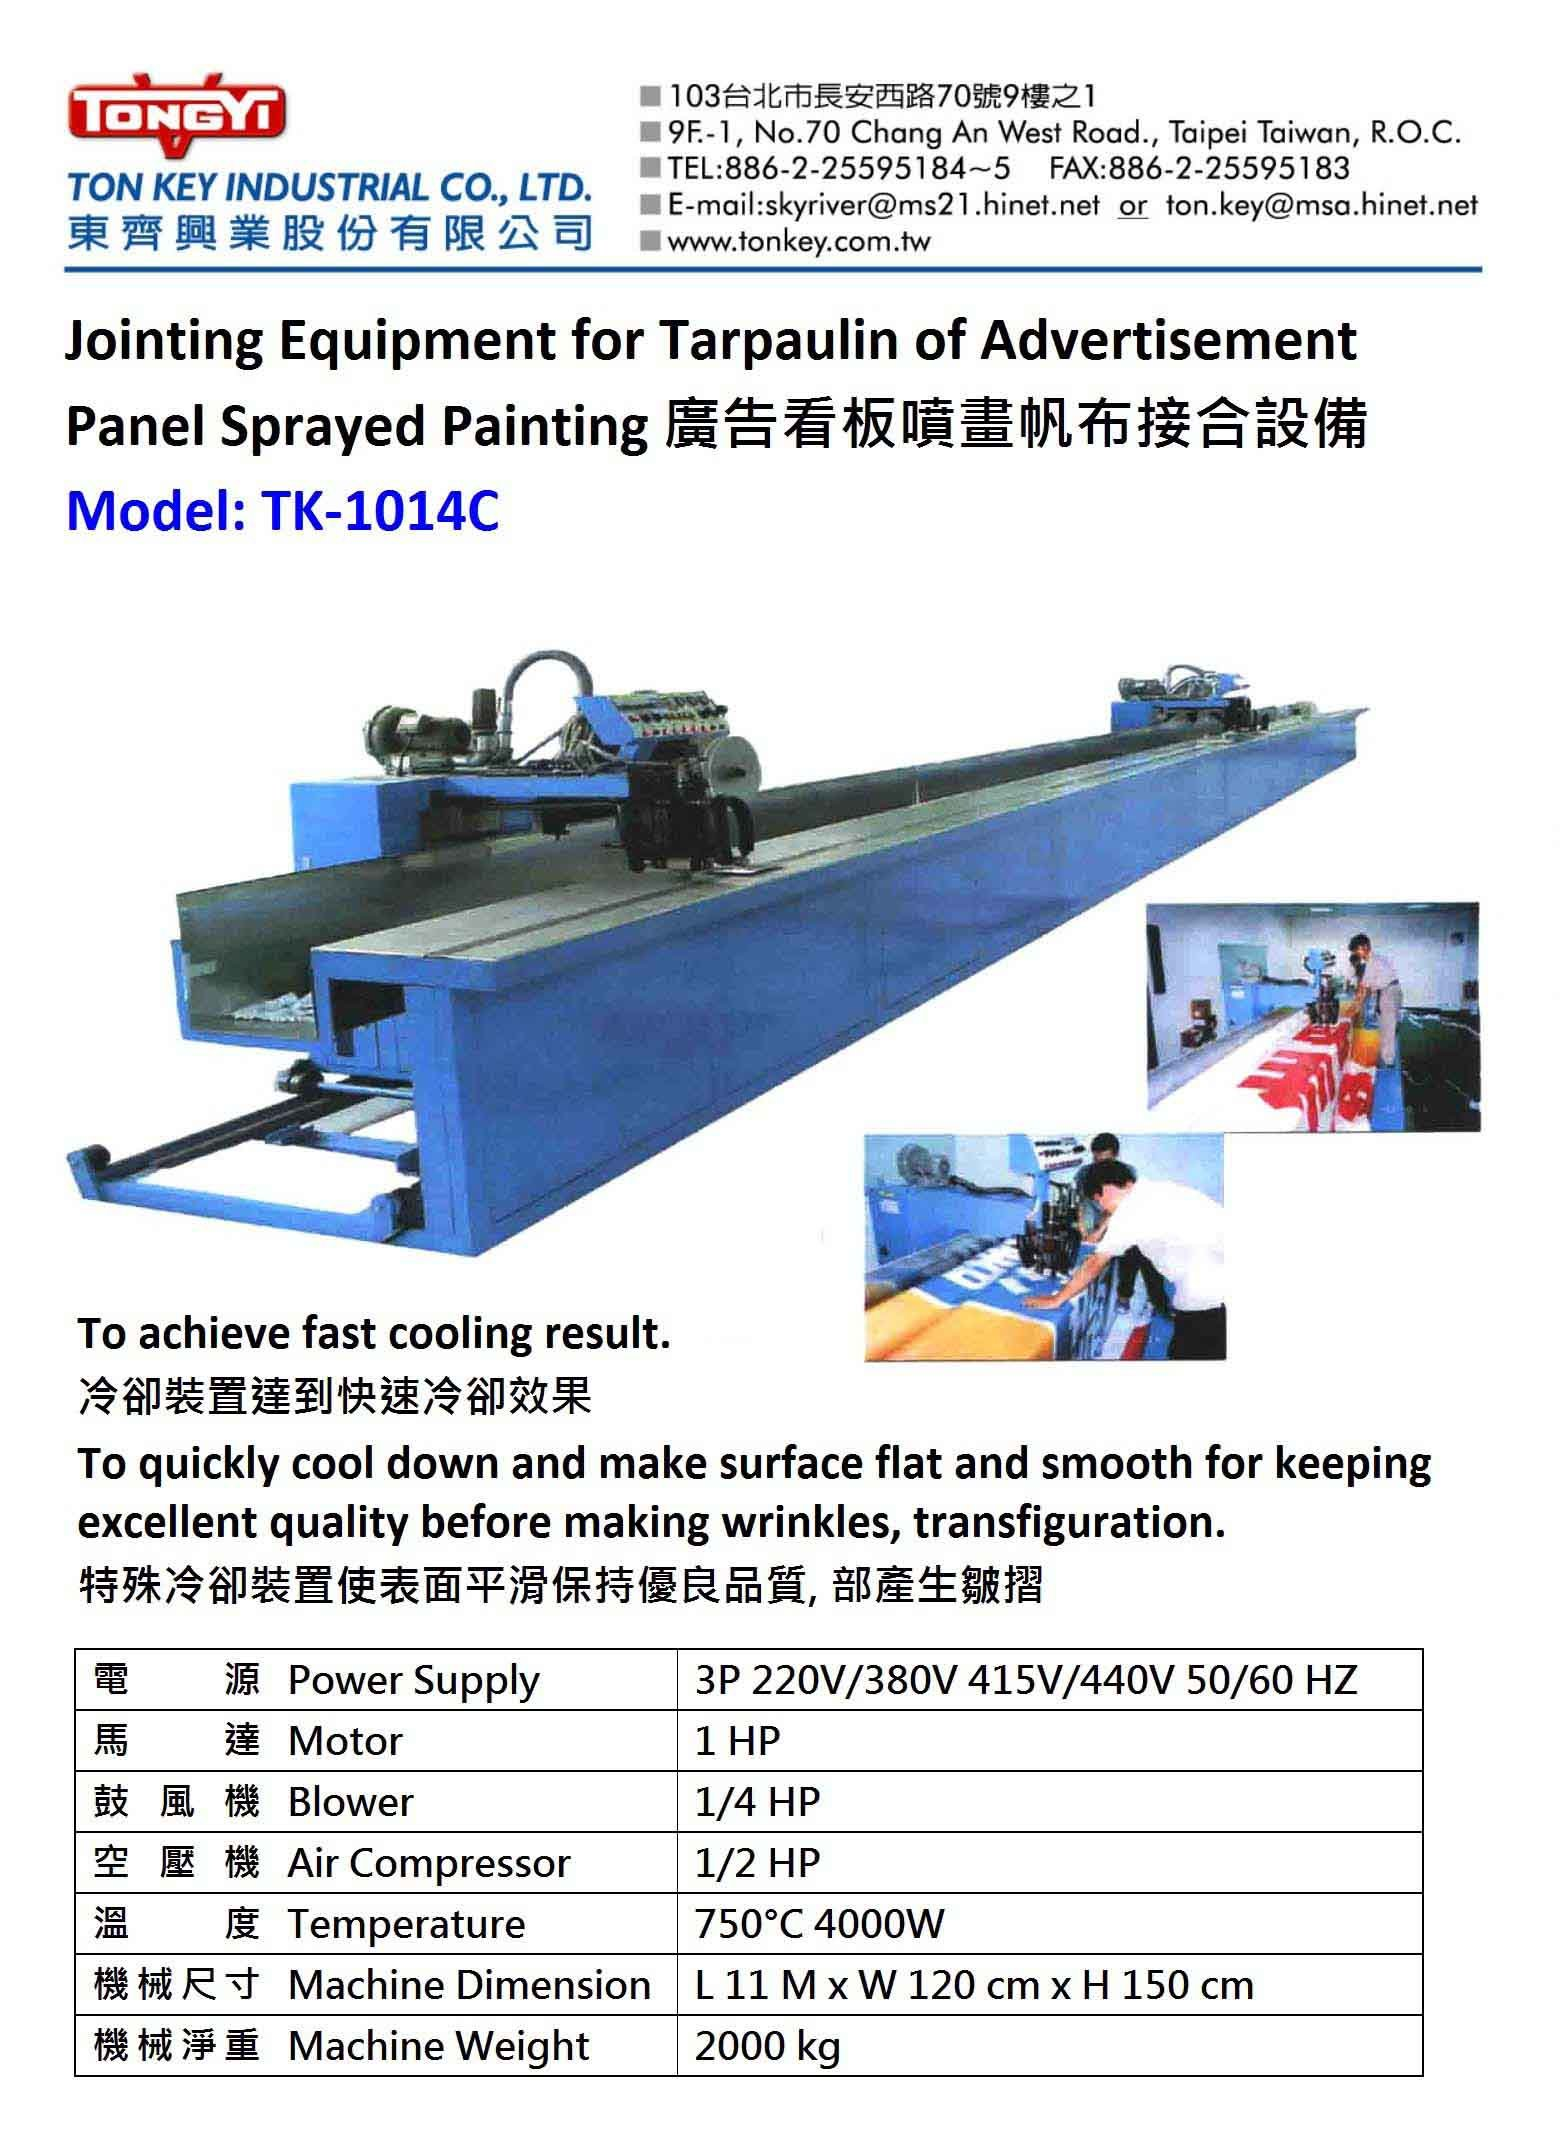 Jointing Equipment for Tarpaulin of Advertisement Panel Sprayed Painting